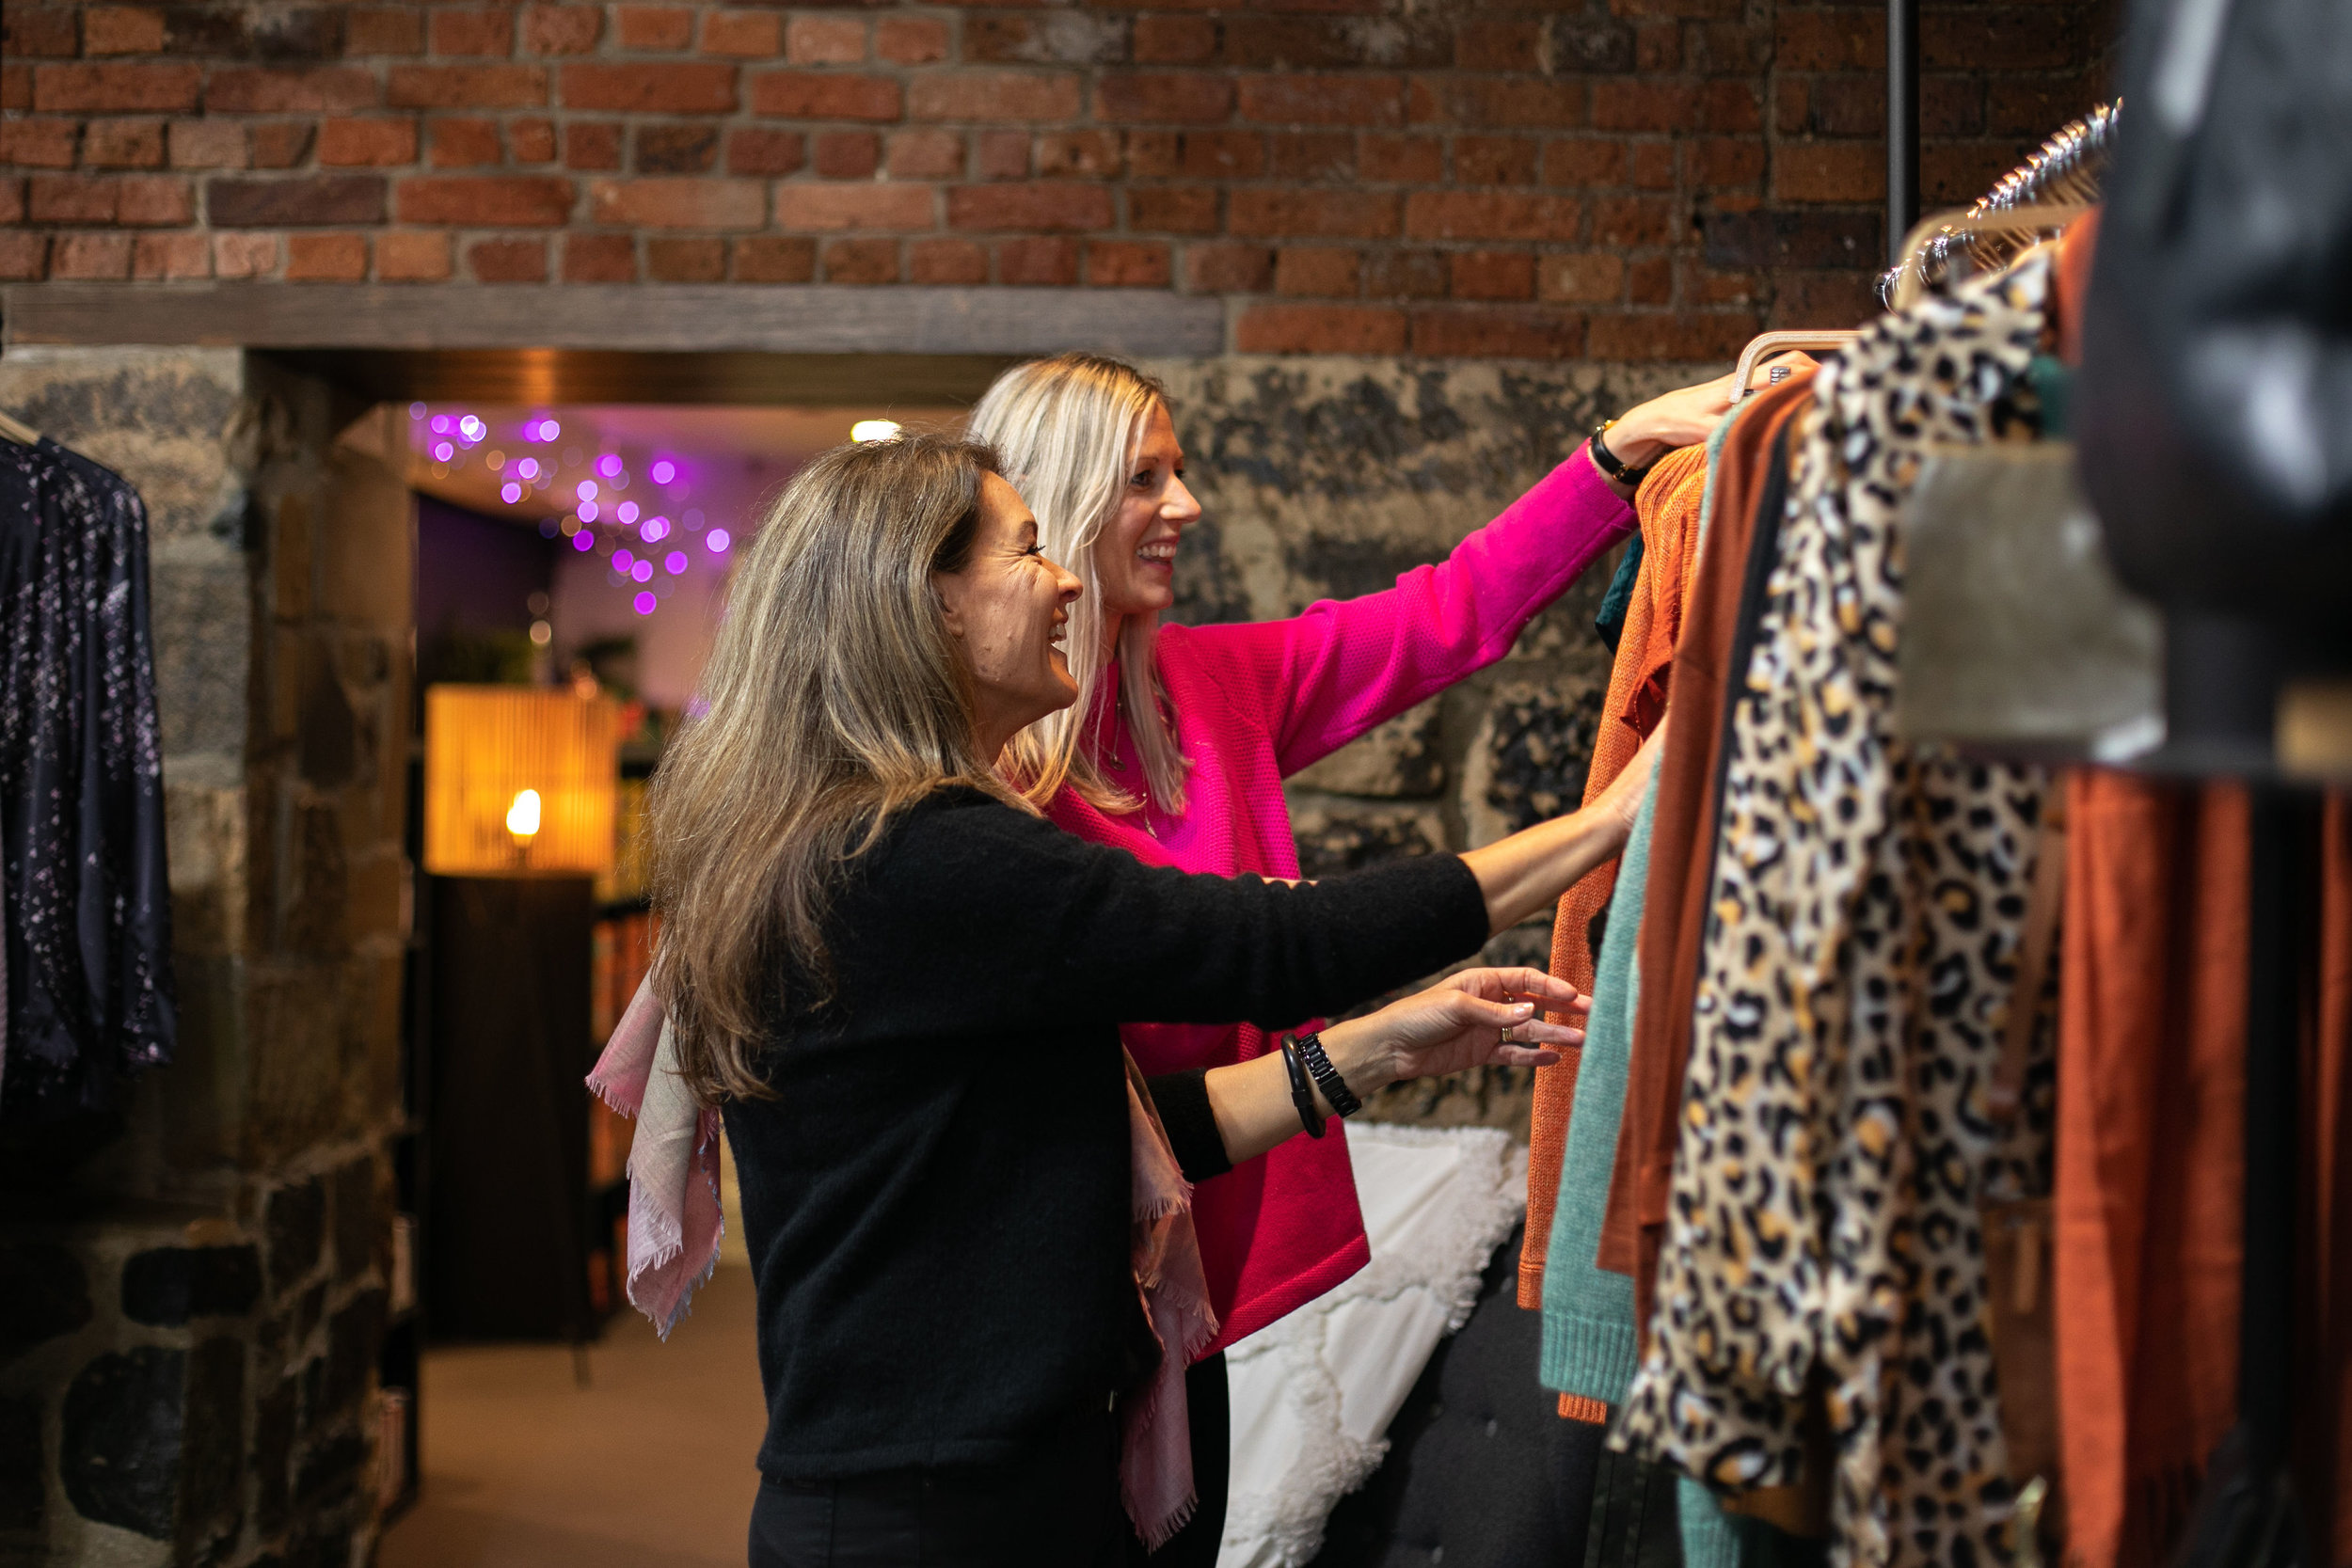 Amanda looks through new clothing stock at Inside Home and Gifts with a staff member. Image: Melanie de Ruyter for Winterlicous 2019.